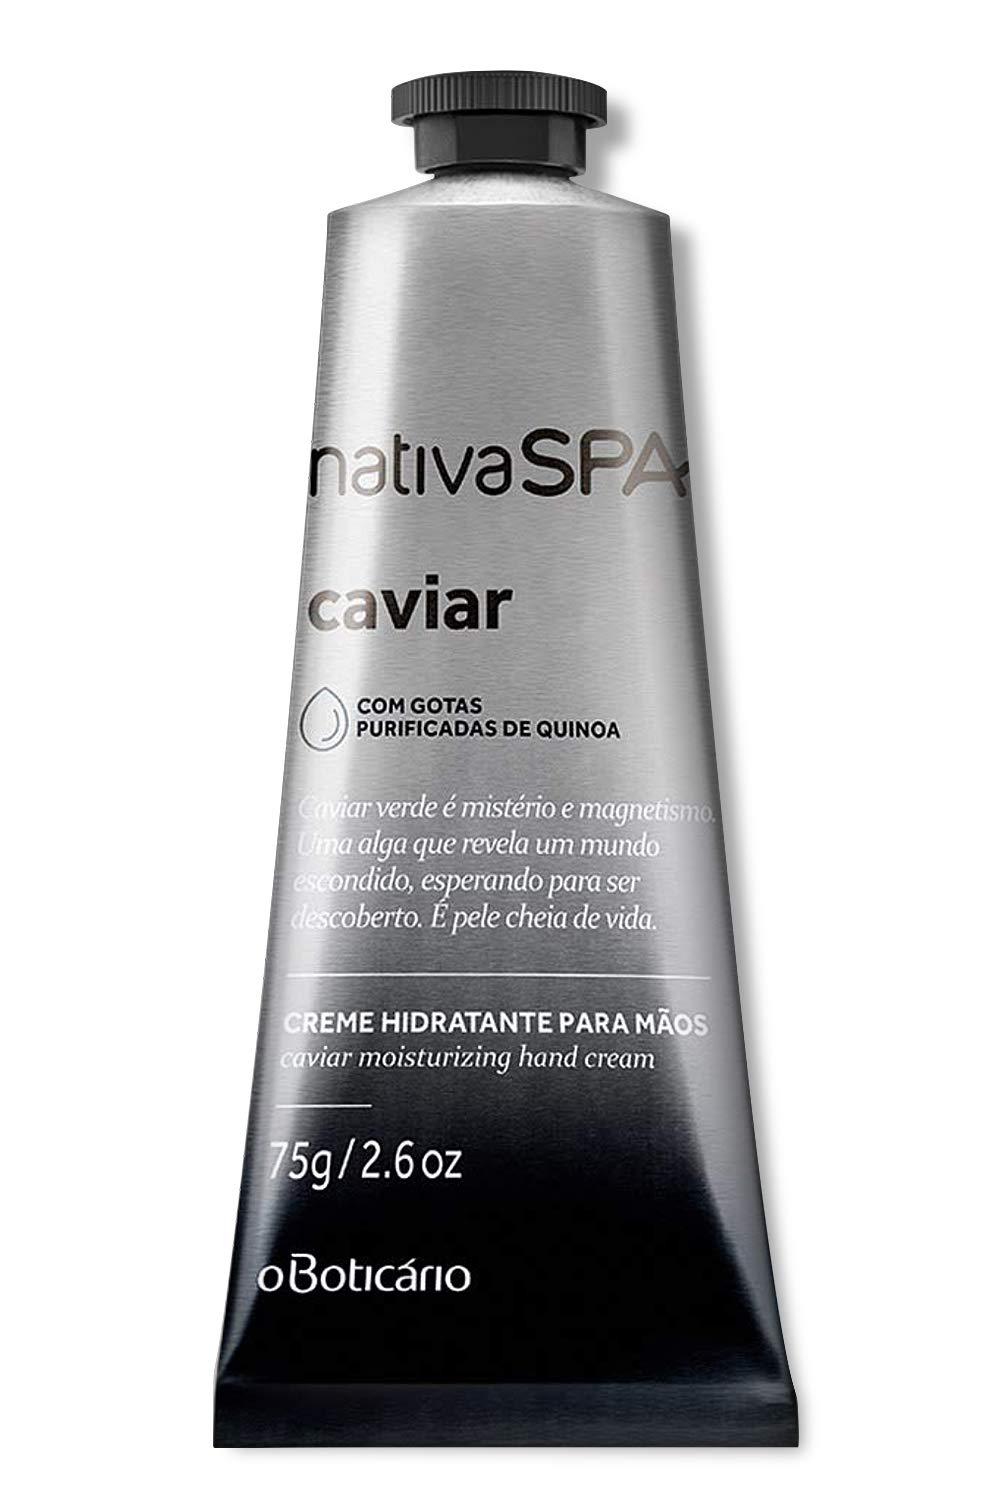 Nativa SPA Caviar Moisturizing Hand Cream 75g | 2.6 fl.oz